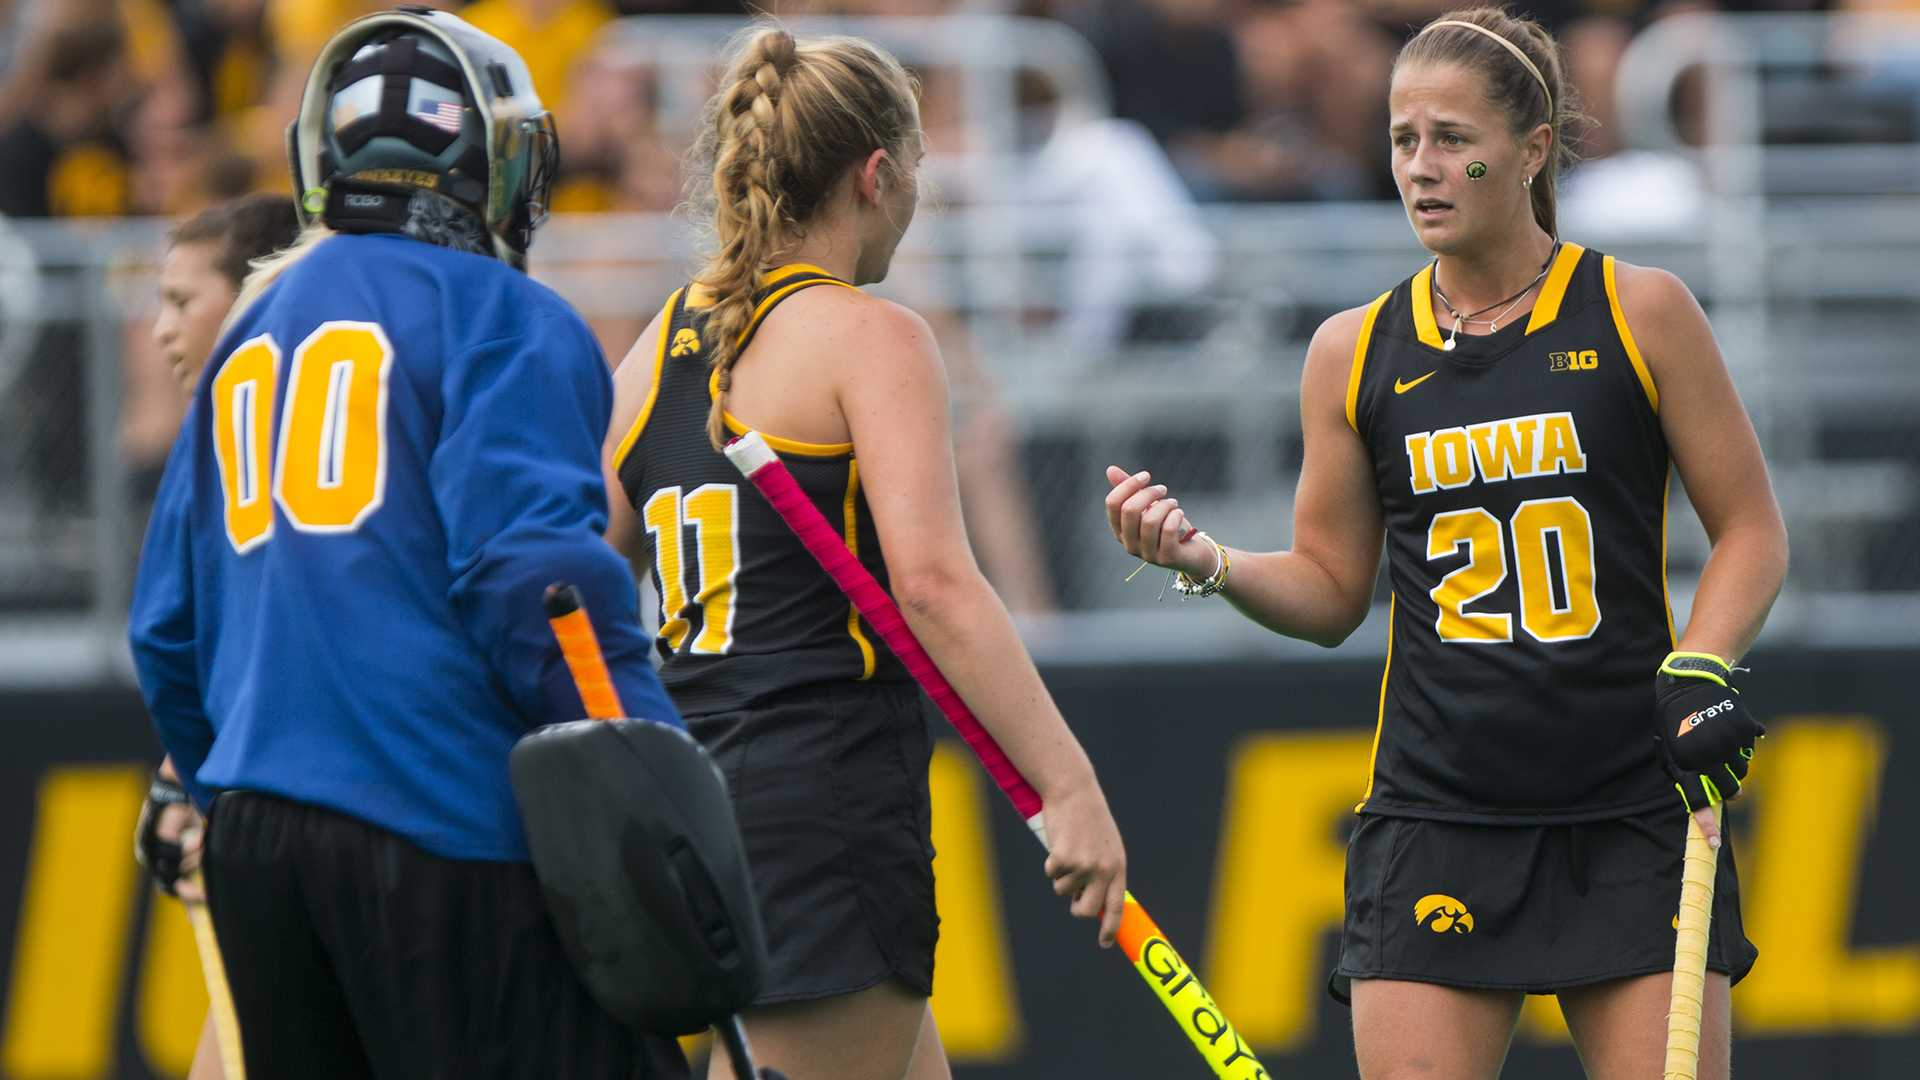 Iowa's Sophie Sunderland (20) talks with Kaite Birch (11) and Katie Jones (00) during a field hockey game during the Big Ten/ACC Challenge at Grant Field in Iowa City on Saturday, Aug. 26, 2017. The Hawkeyes fell to Wake Forest, 3-2. (Joseph Cress/The Daily Iowan)